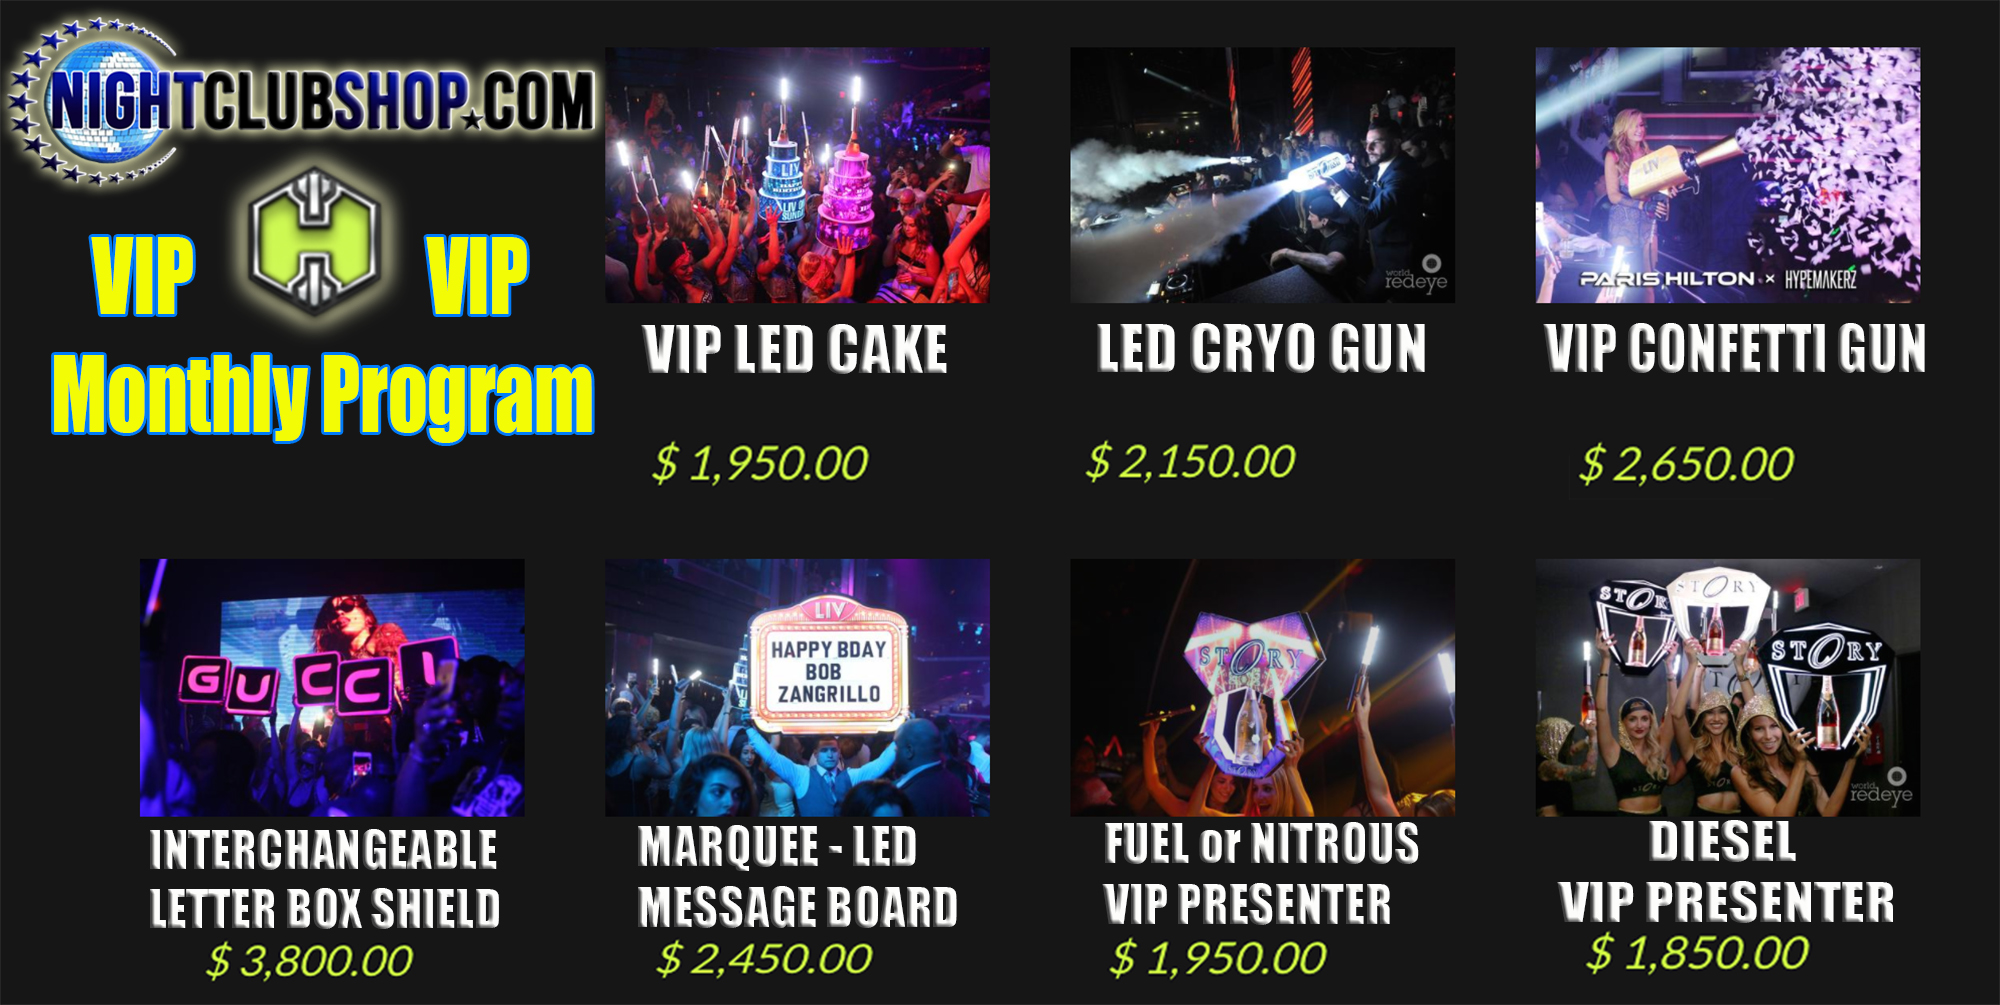 1.vip-monthly-service-program-bottle-service-productsnightclub-bar-dj-bottle-service-plan-lease-nightclubshop.jpg